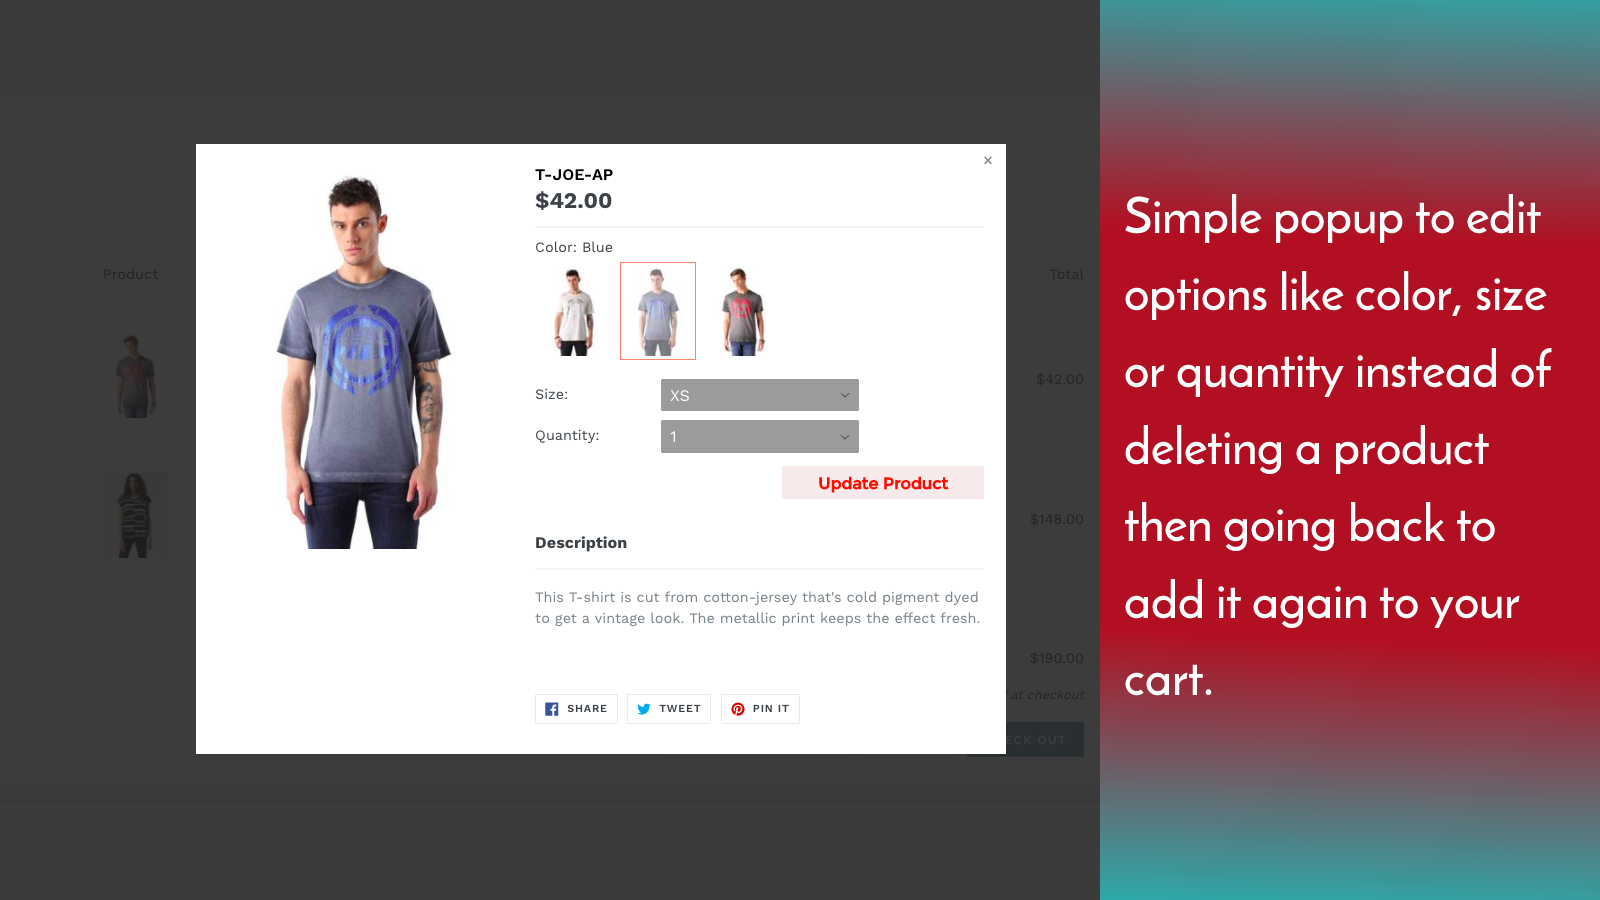 Simple popup to edit your product options when you click on the